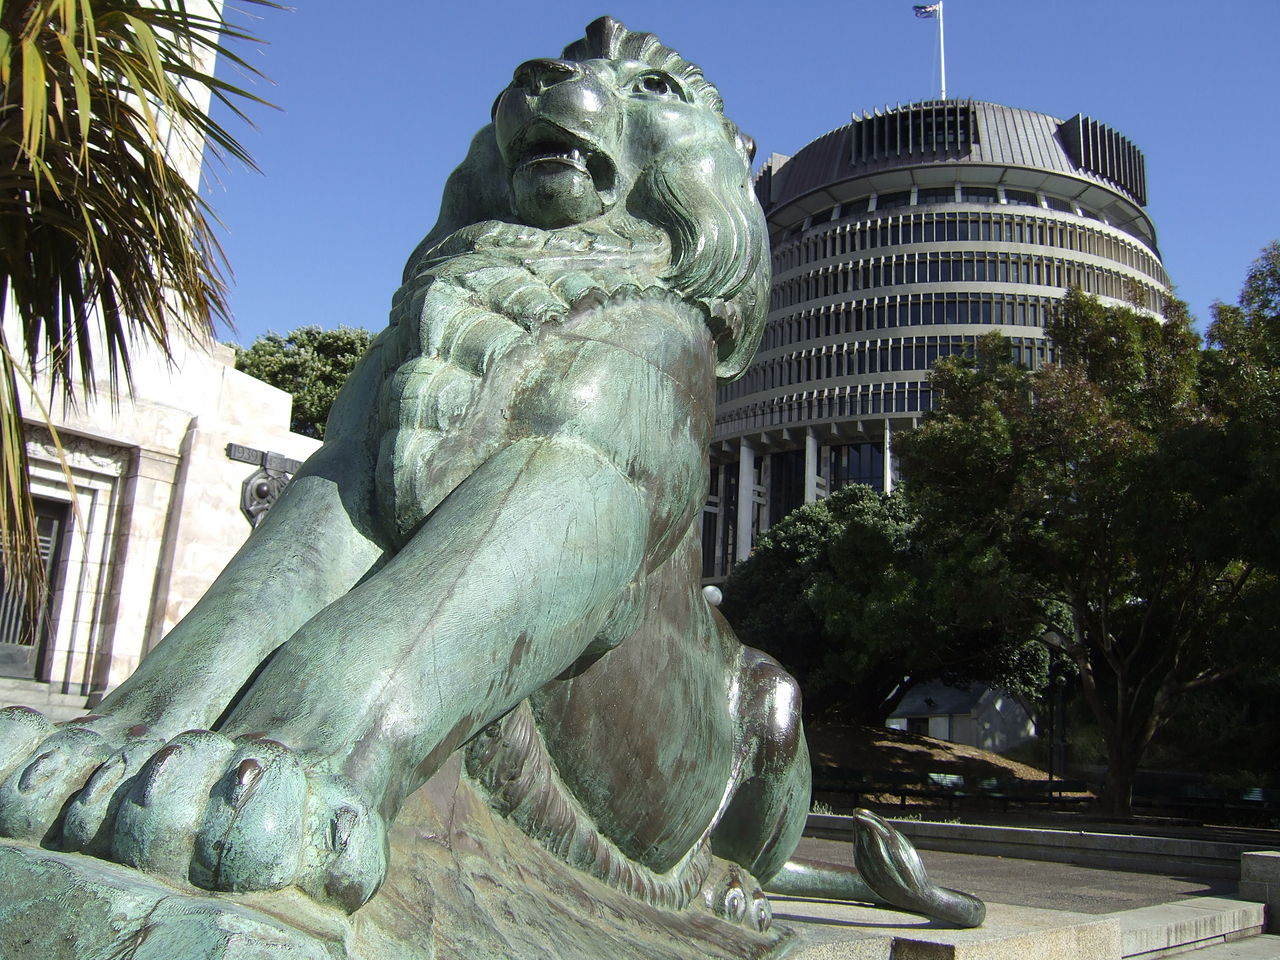 Lion statue in front of the Parliament Building, Wellington, New Zealand (The Beehive)